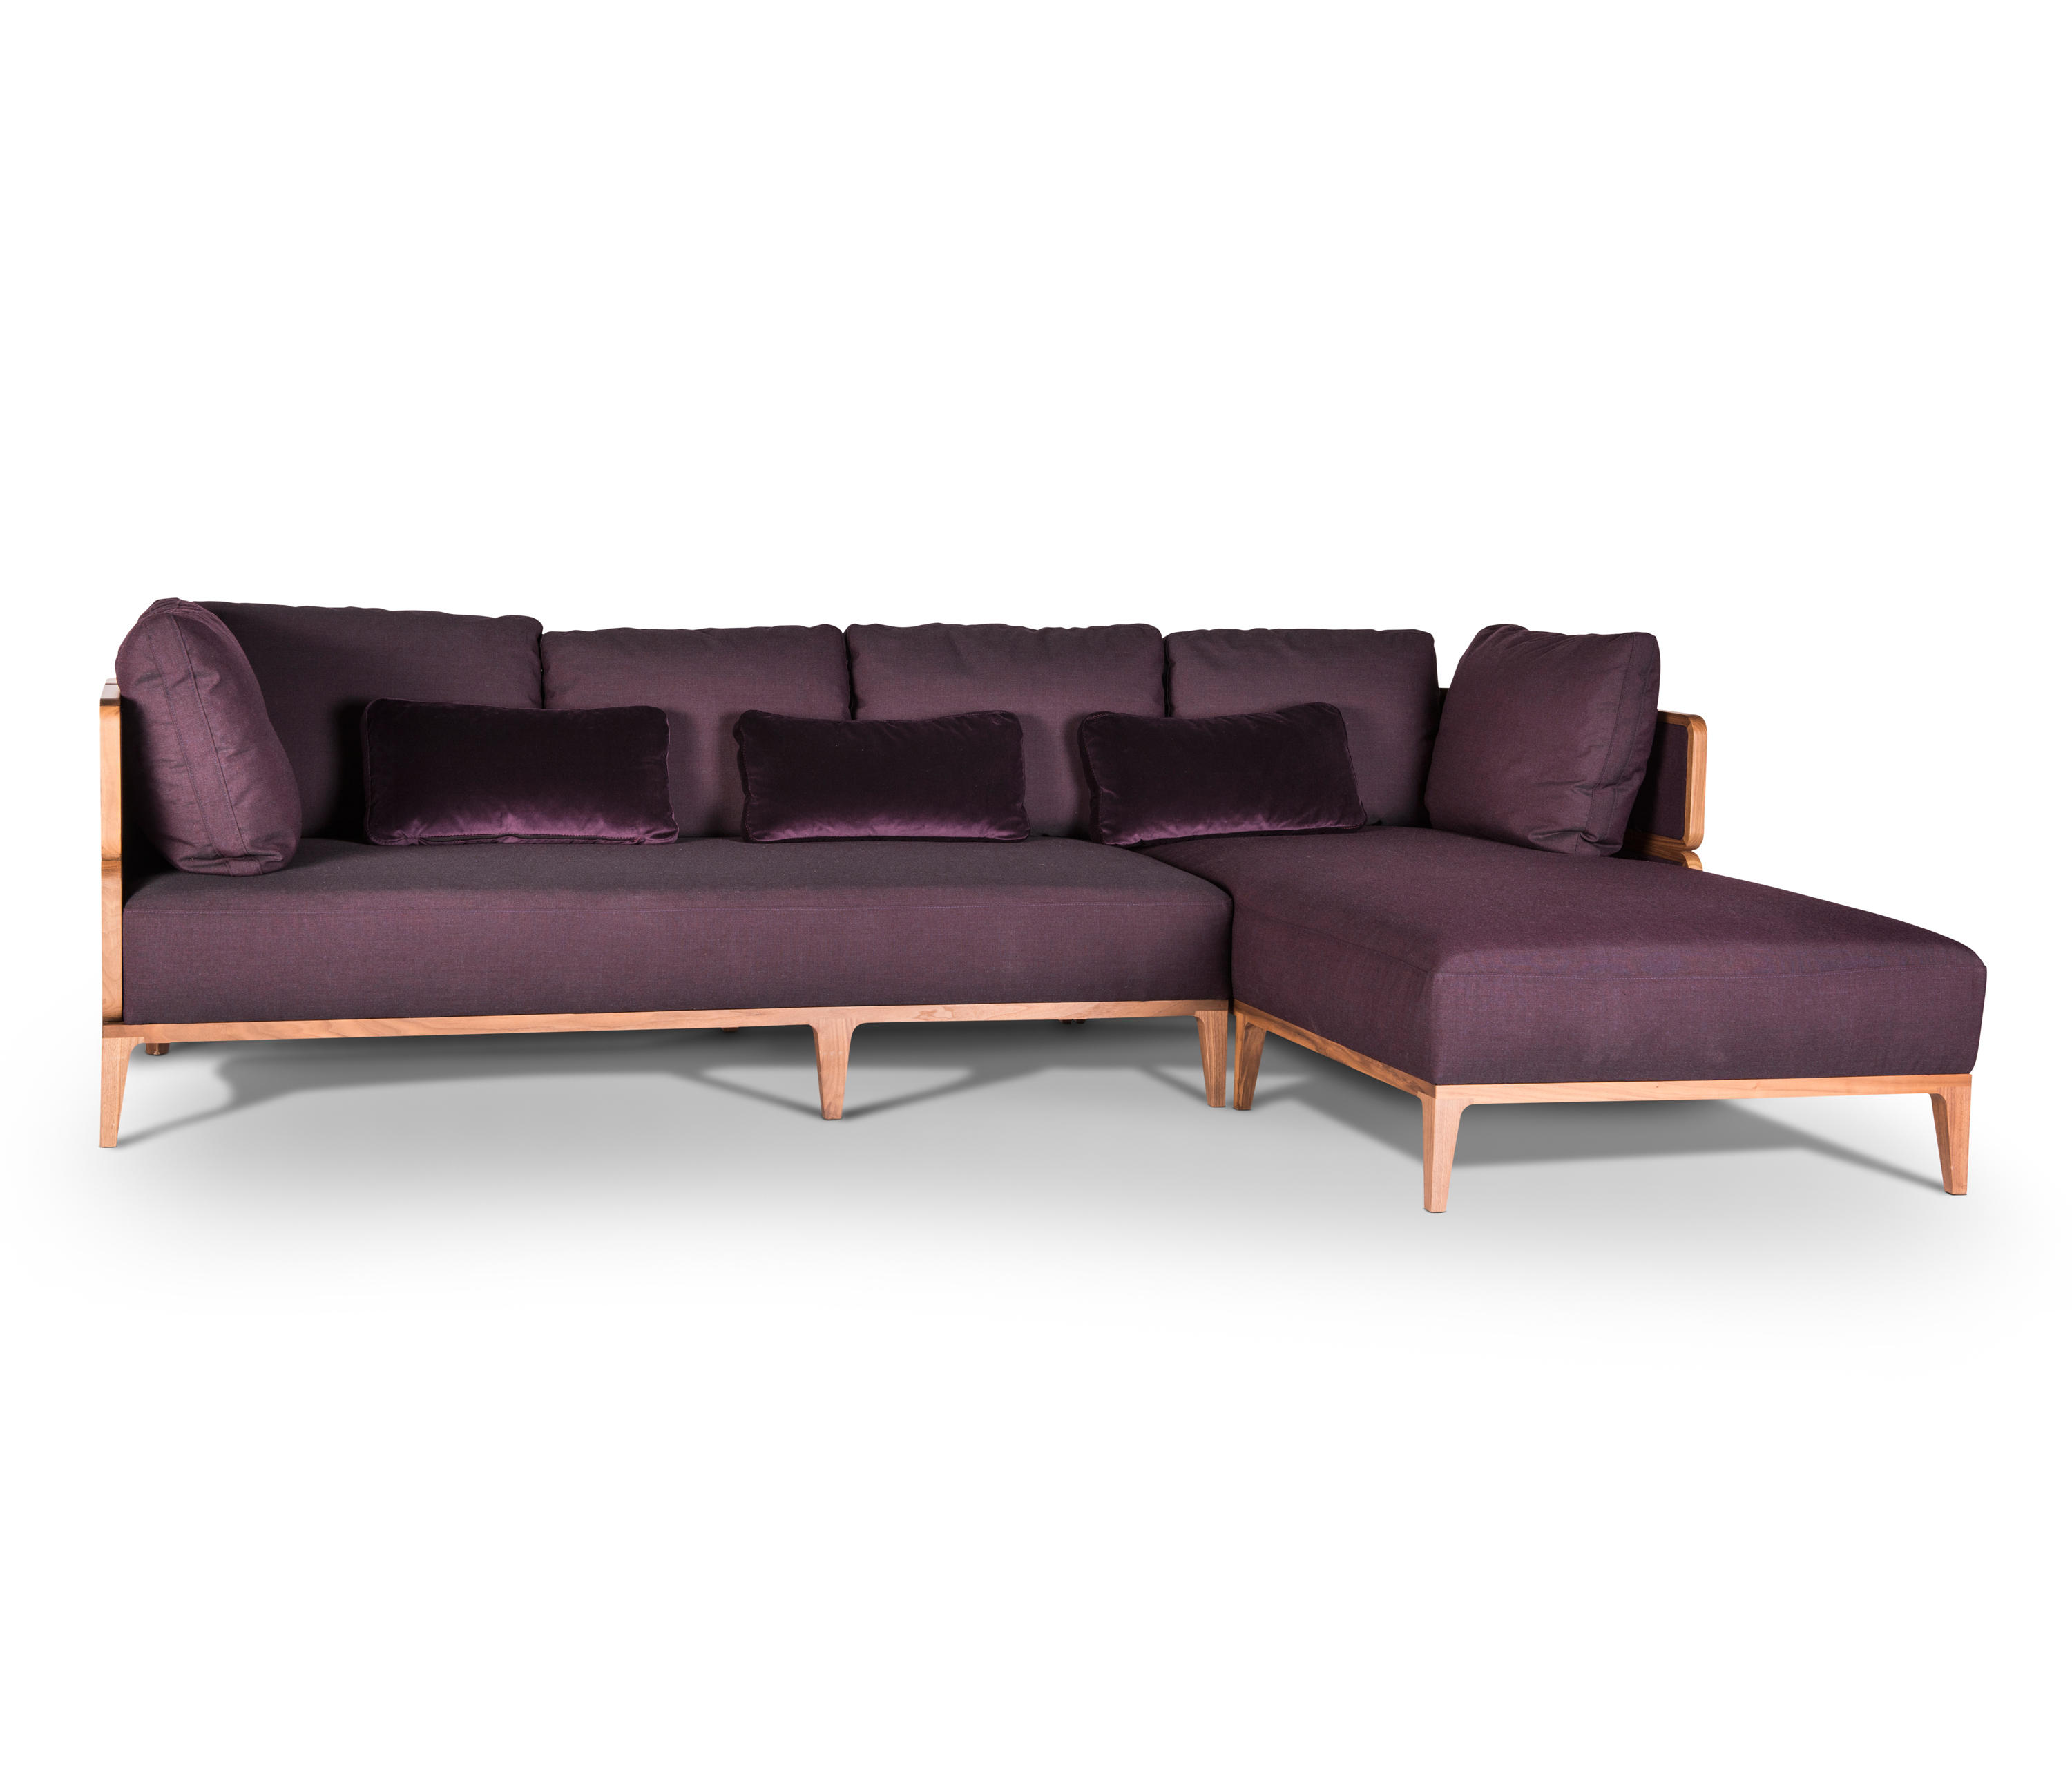 Promenade 185 with chaise longue sofas from wiener gtv for Chaise longue torino